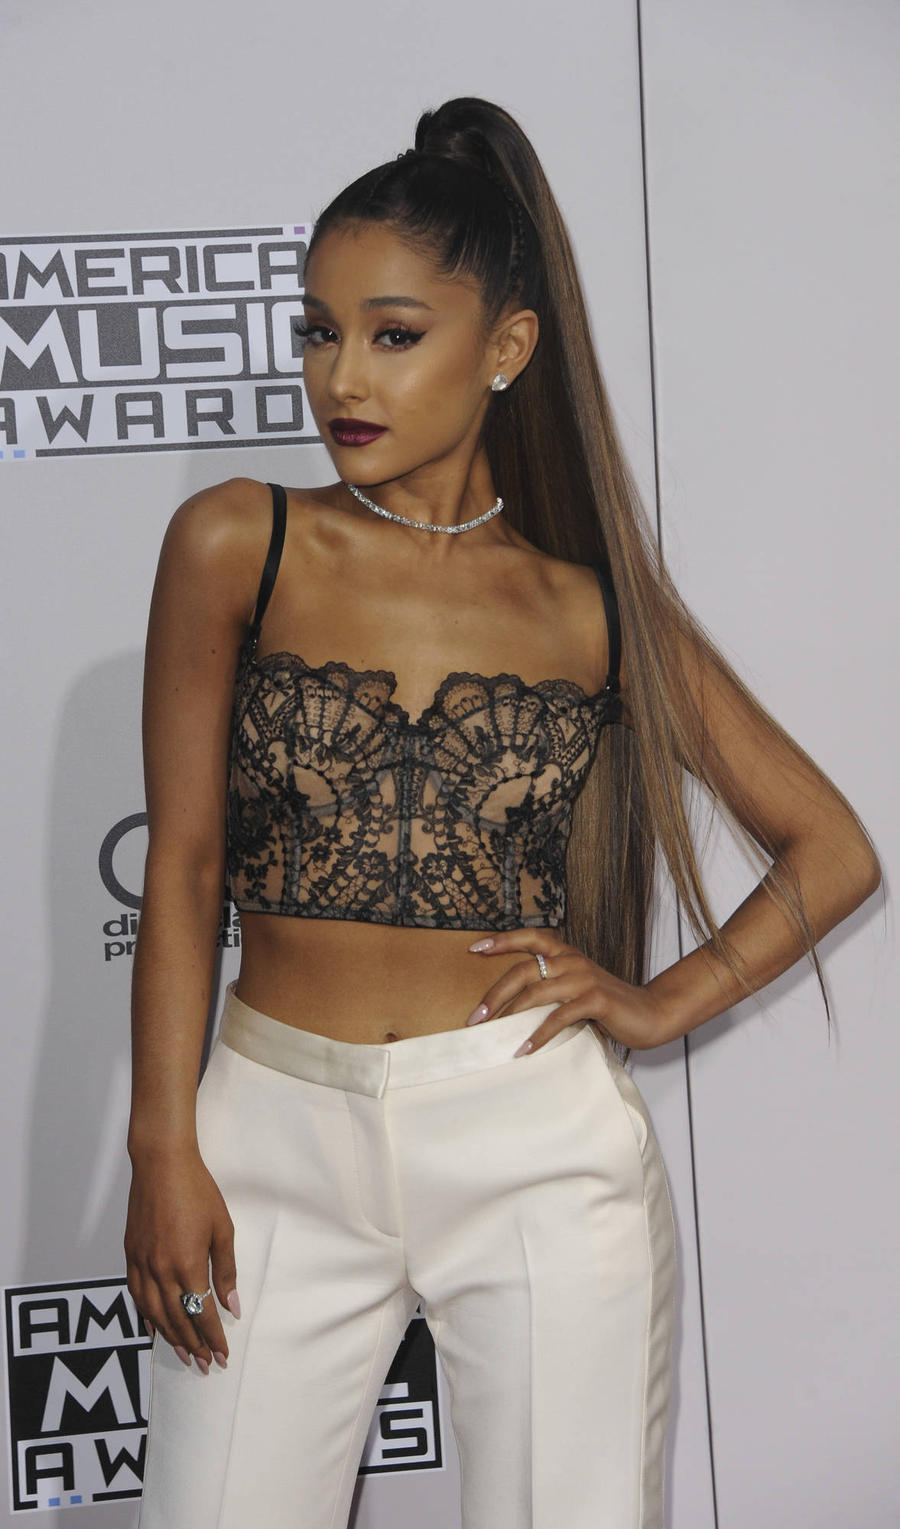 Ariana Grande 'Almost Cried' Seeing Selena Gomez On Amas Red Carpet